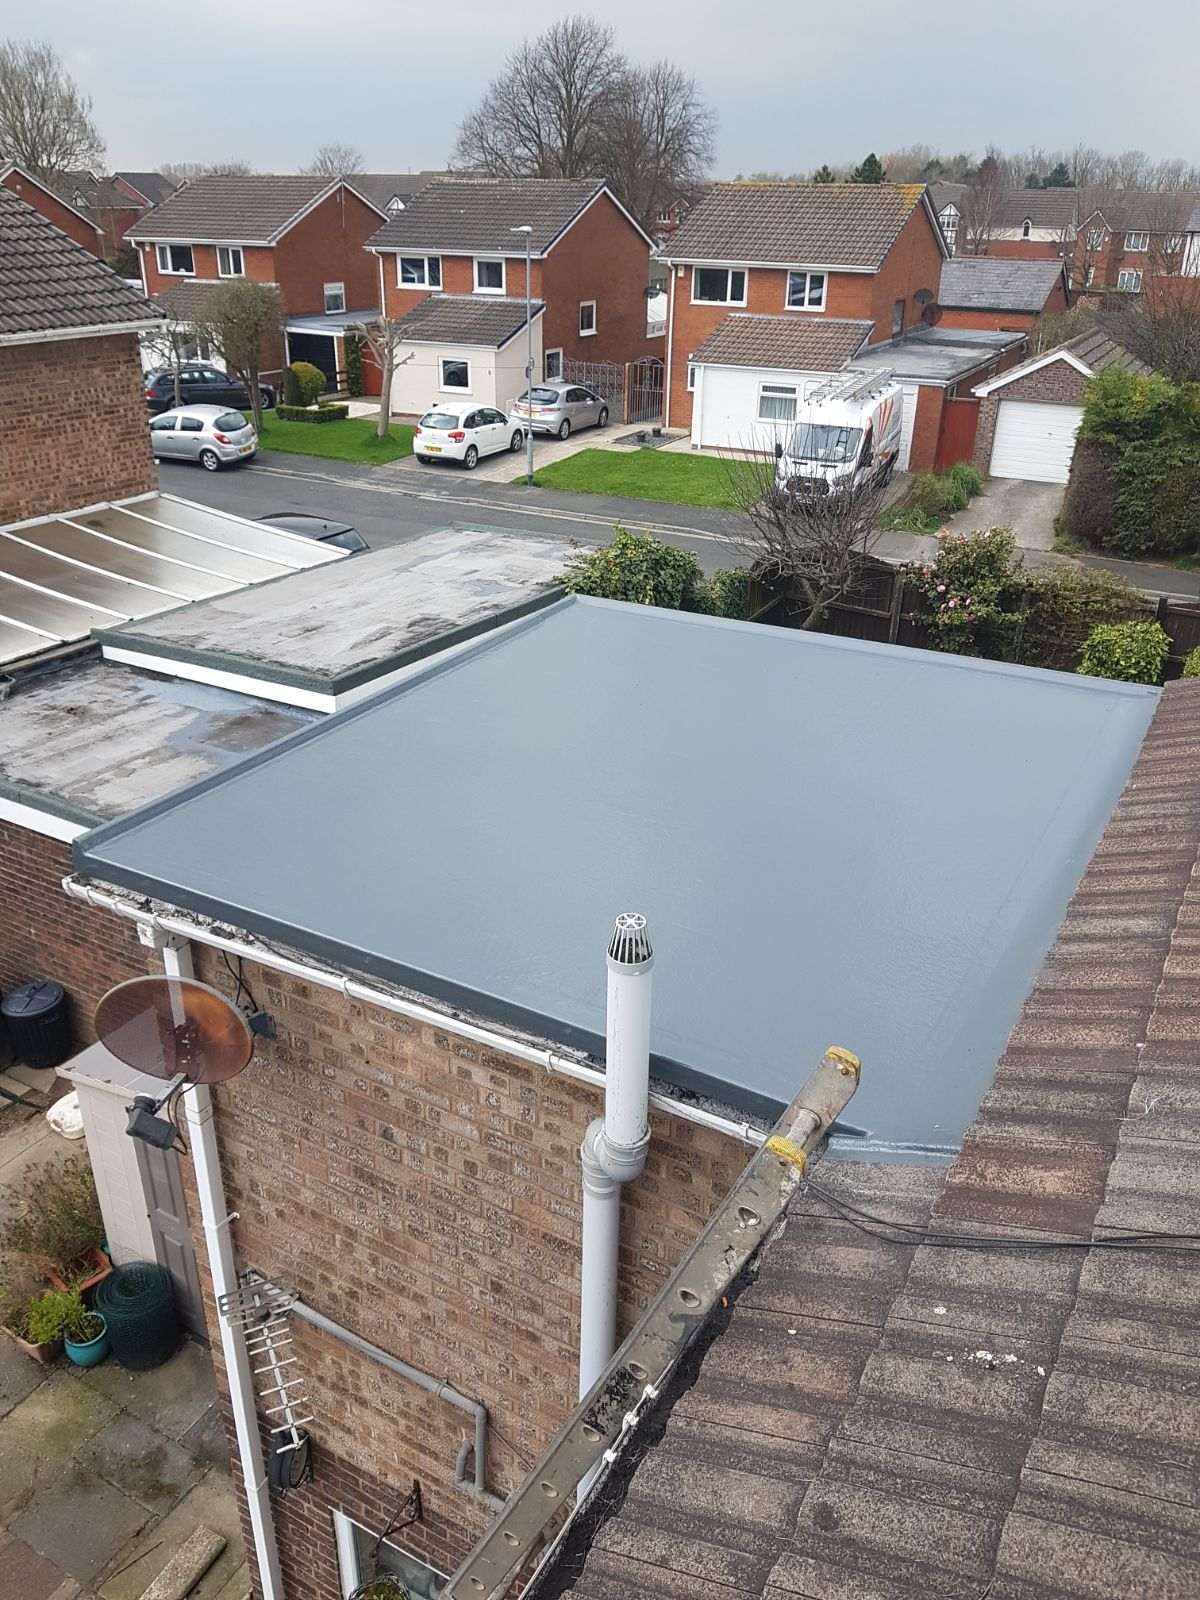 Fibreglass Roof Installation Fibreglass Roof Roofing Systems Flat Roof